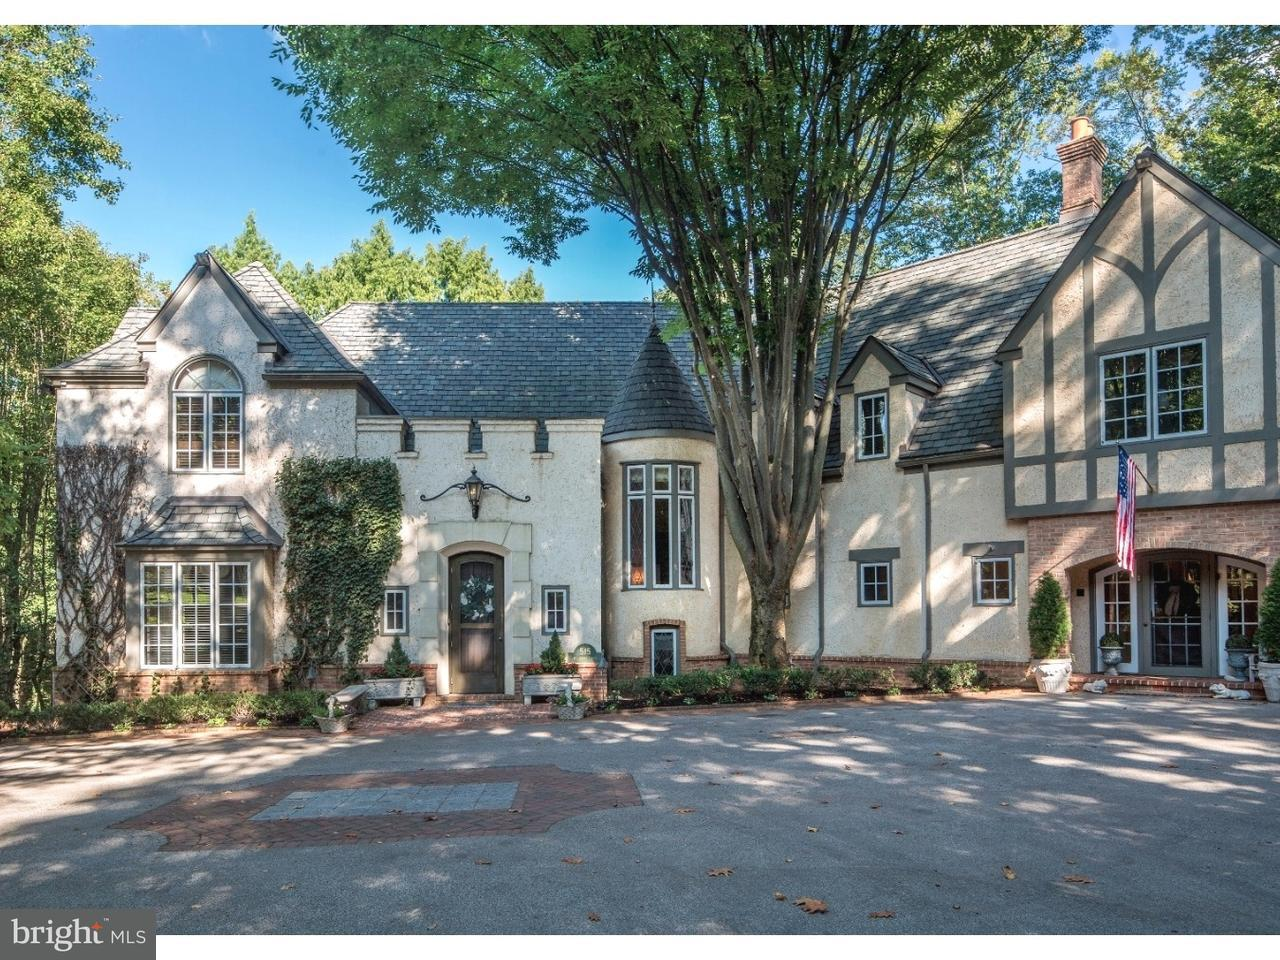 Single Family Home for Sale at 515 MULBERRY Lane Haverford, Pennsylvania 19041 United States